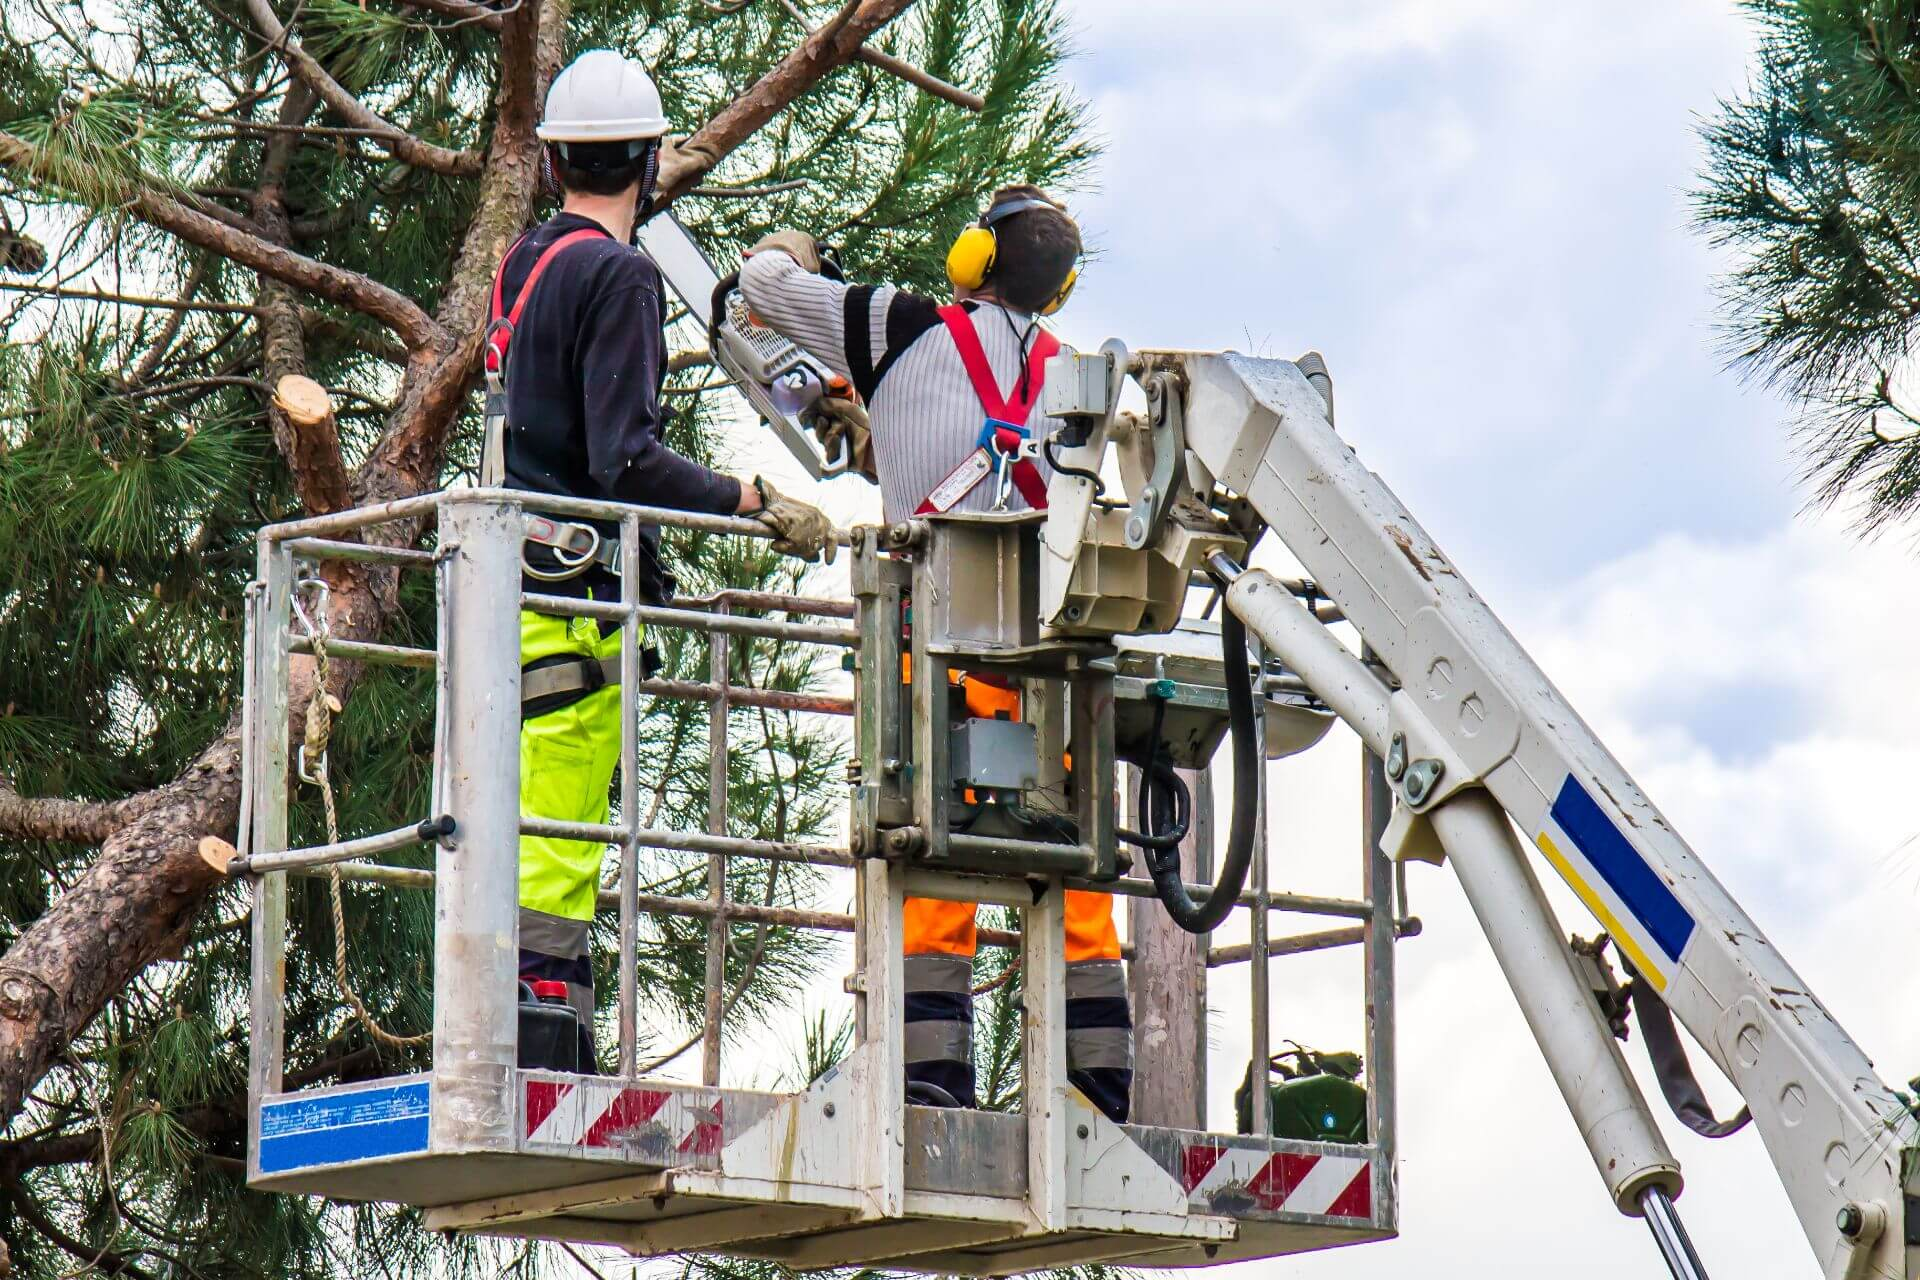 Top 4 Uses of a Cherry Picker